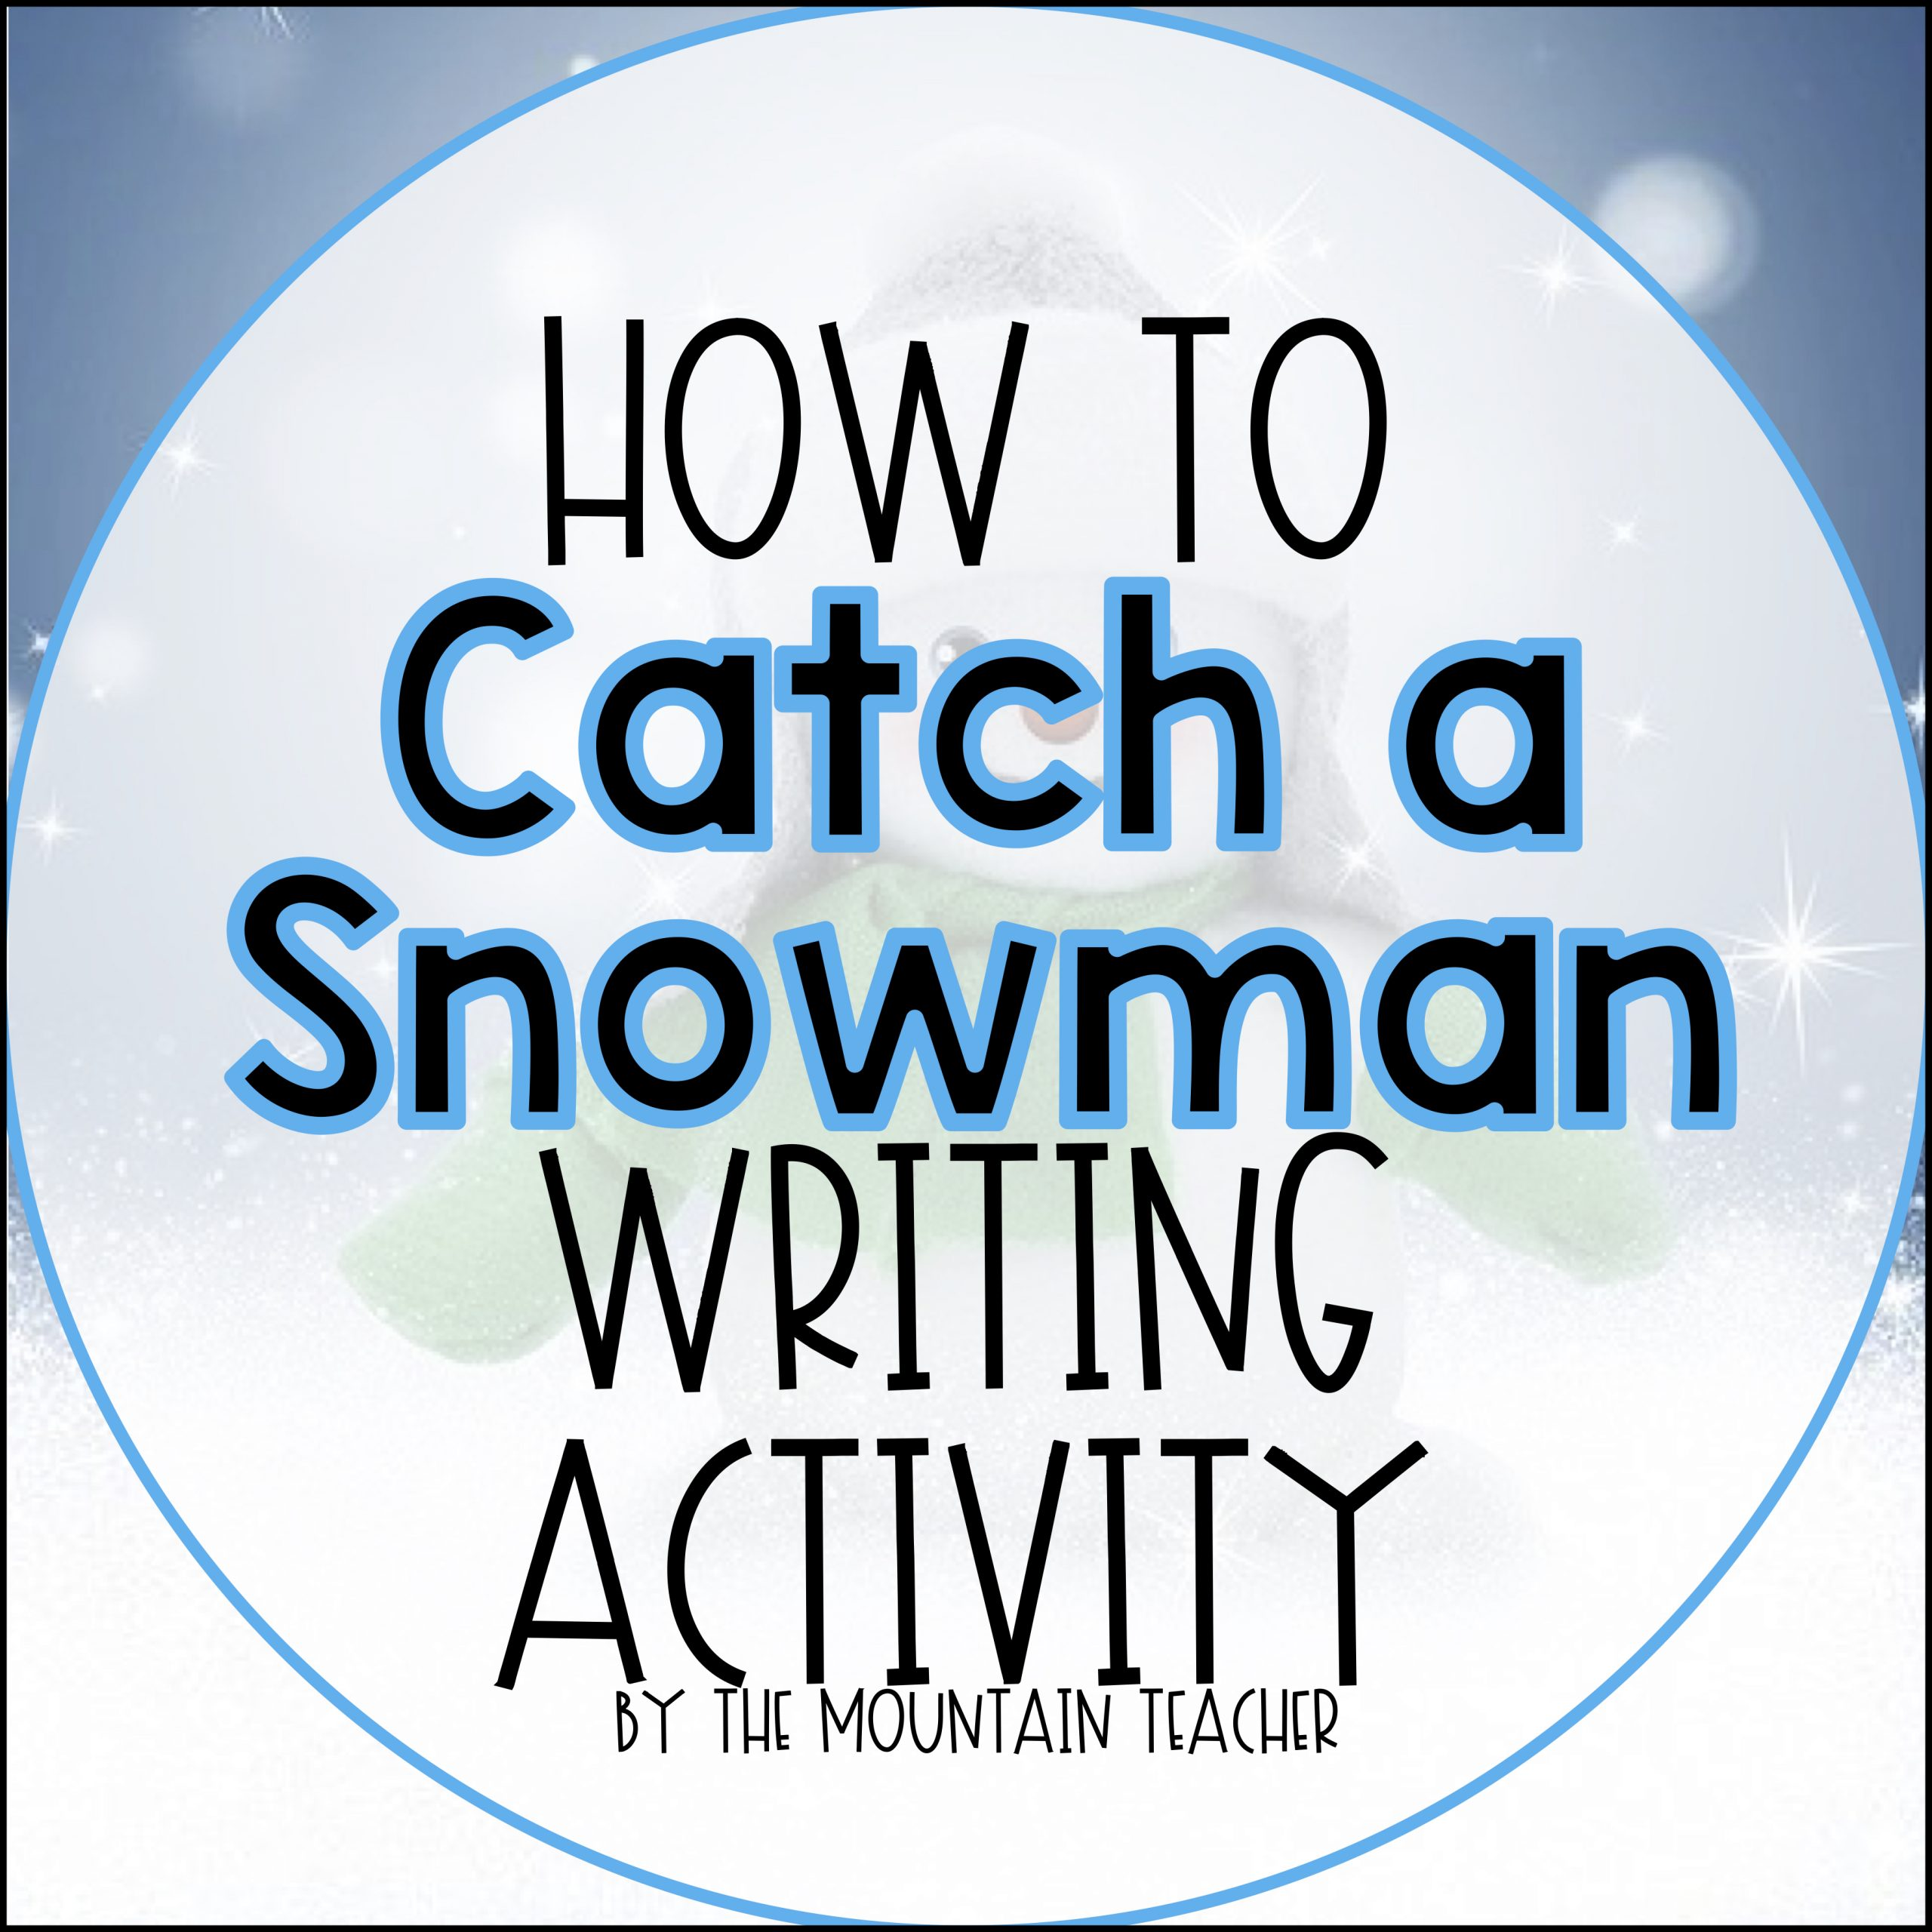 How to Catch a Snowman Writing Activity and Craft